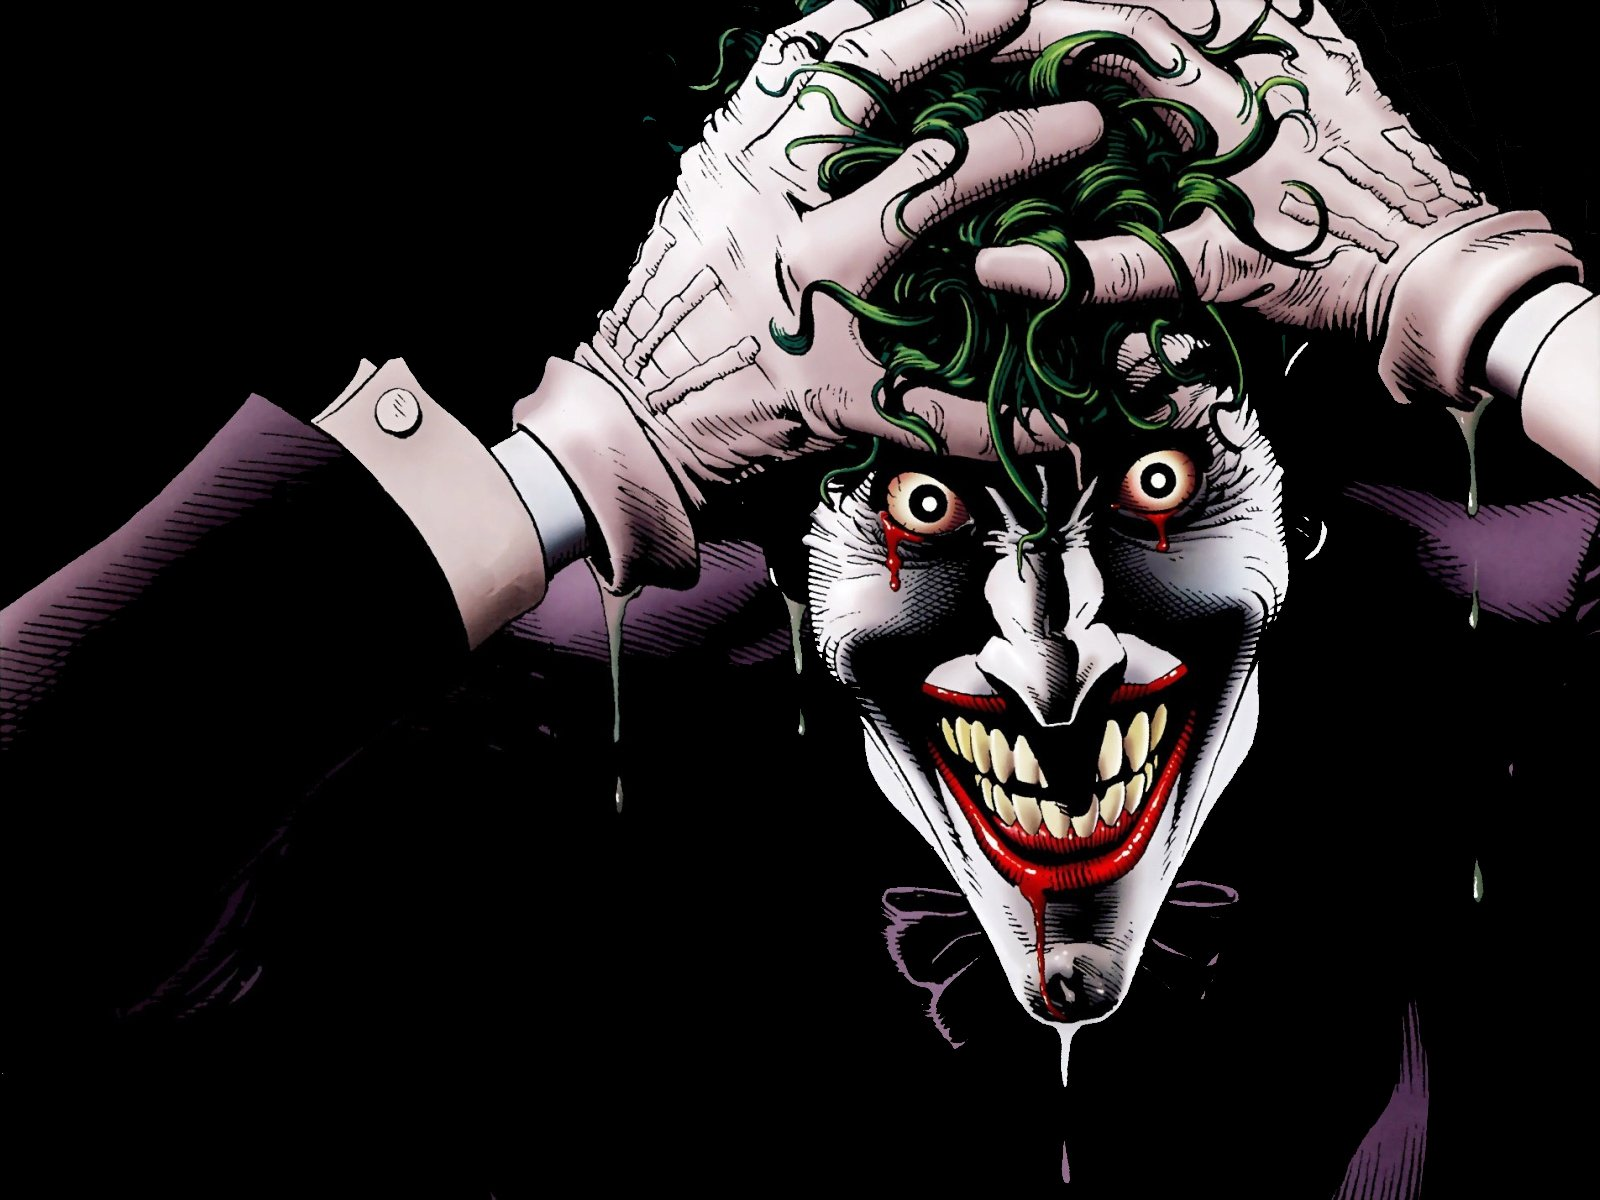 591 Joker Hd Wallpapers Background Images Wallpaper Abyss Page 2